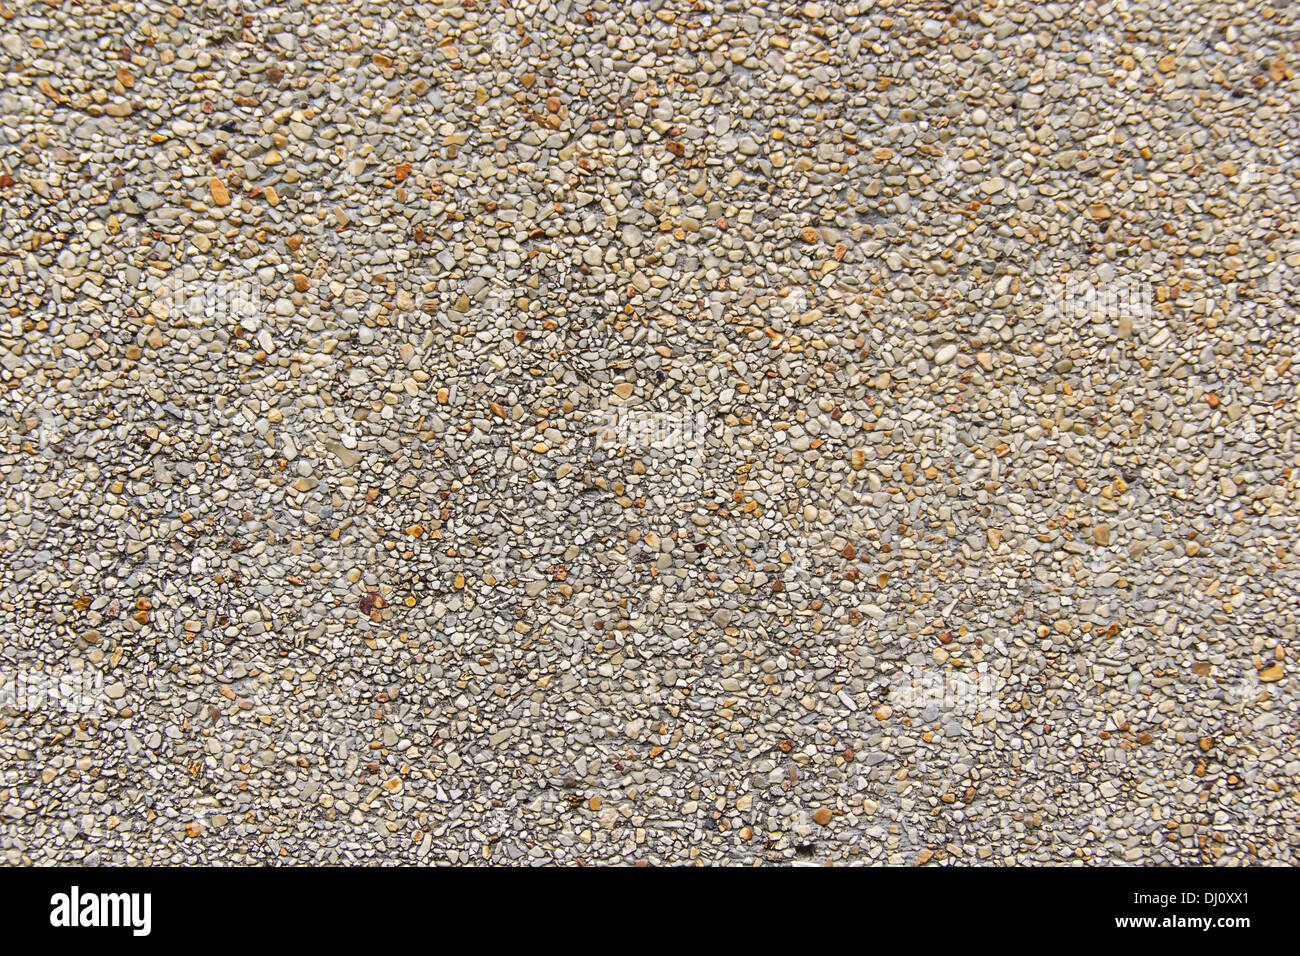 Little pebbles texture of floor tile stone background and texture little pebbles texture of floor tile stone background and texture doublecrazyfo Image collections